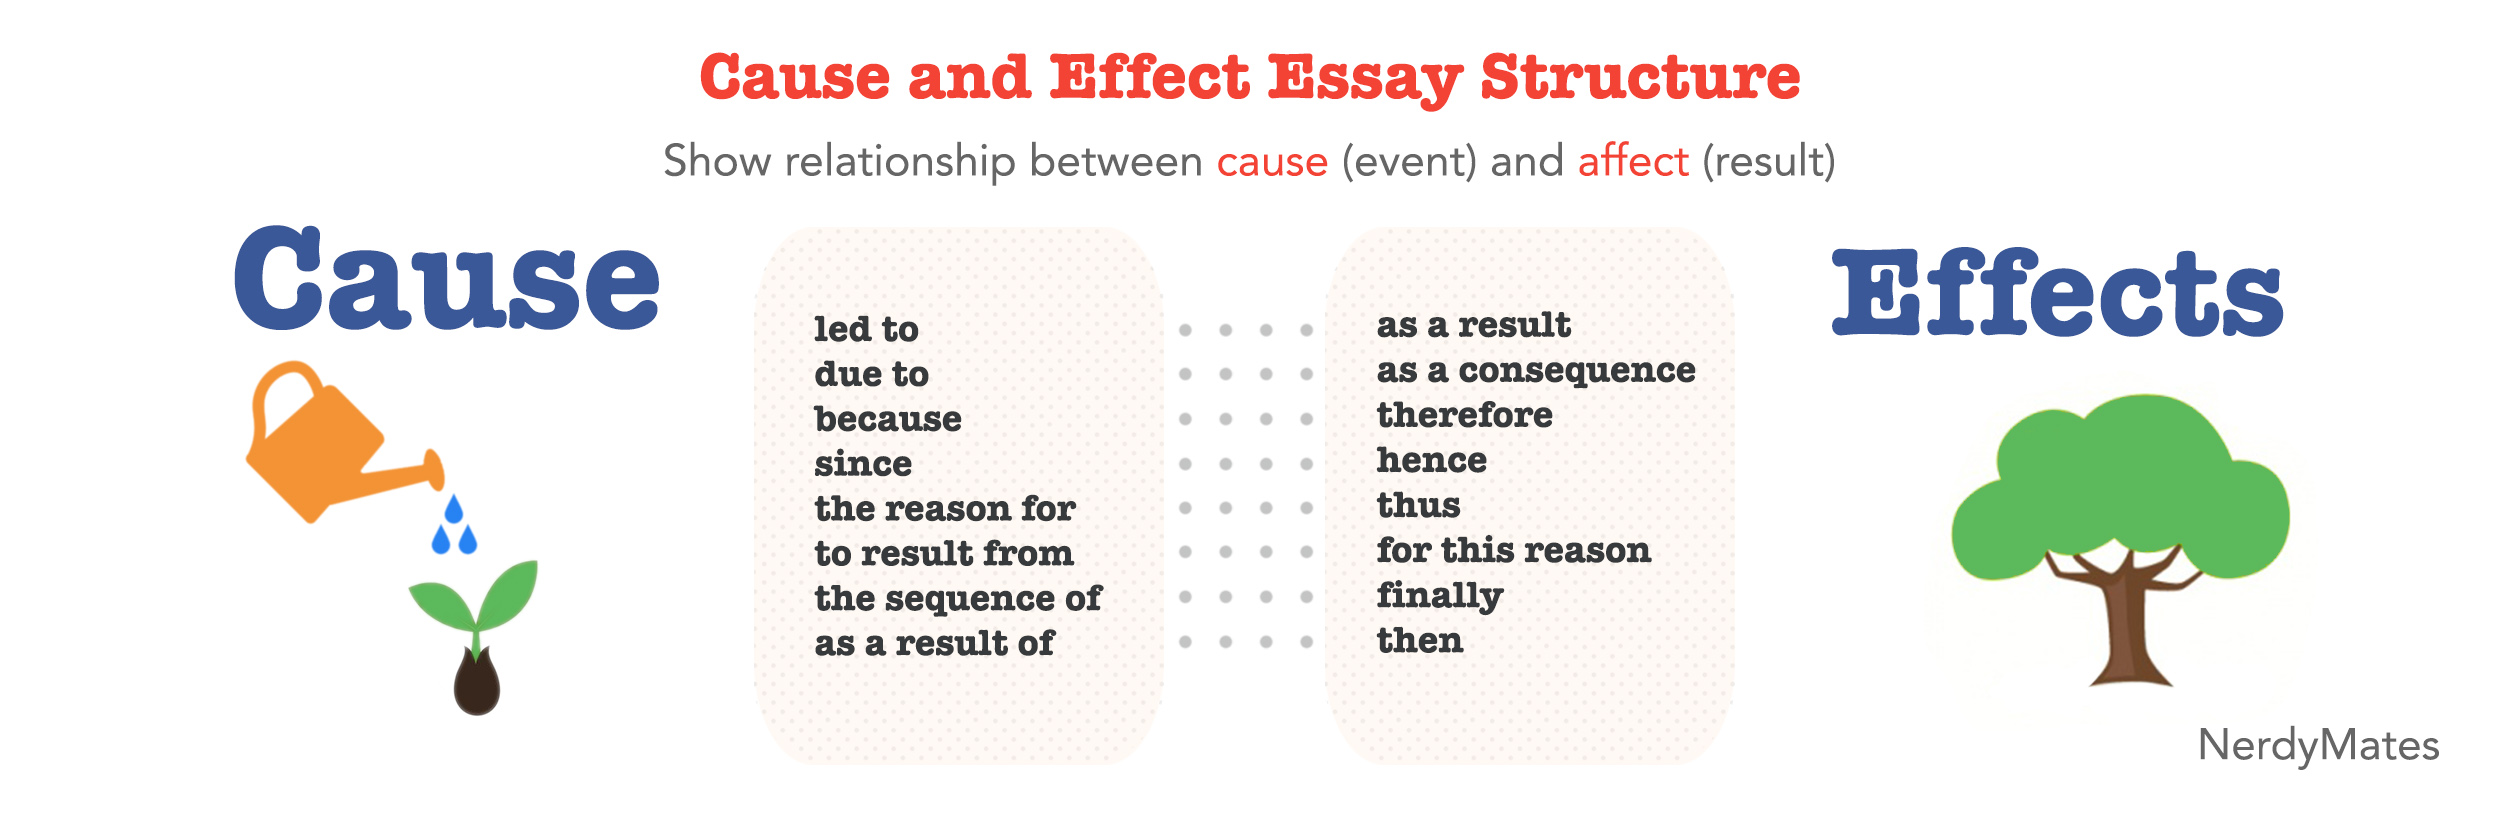 how to write a cause and effect essay effective tips and examples  let us explore how to write a cause and effect essay according to its sections